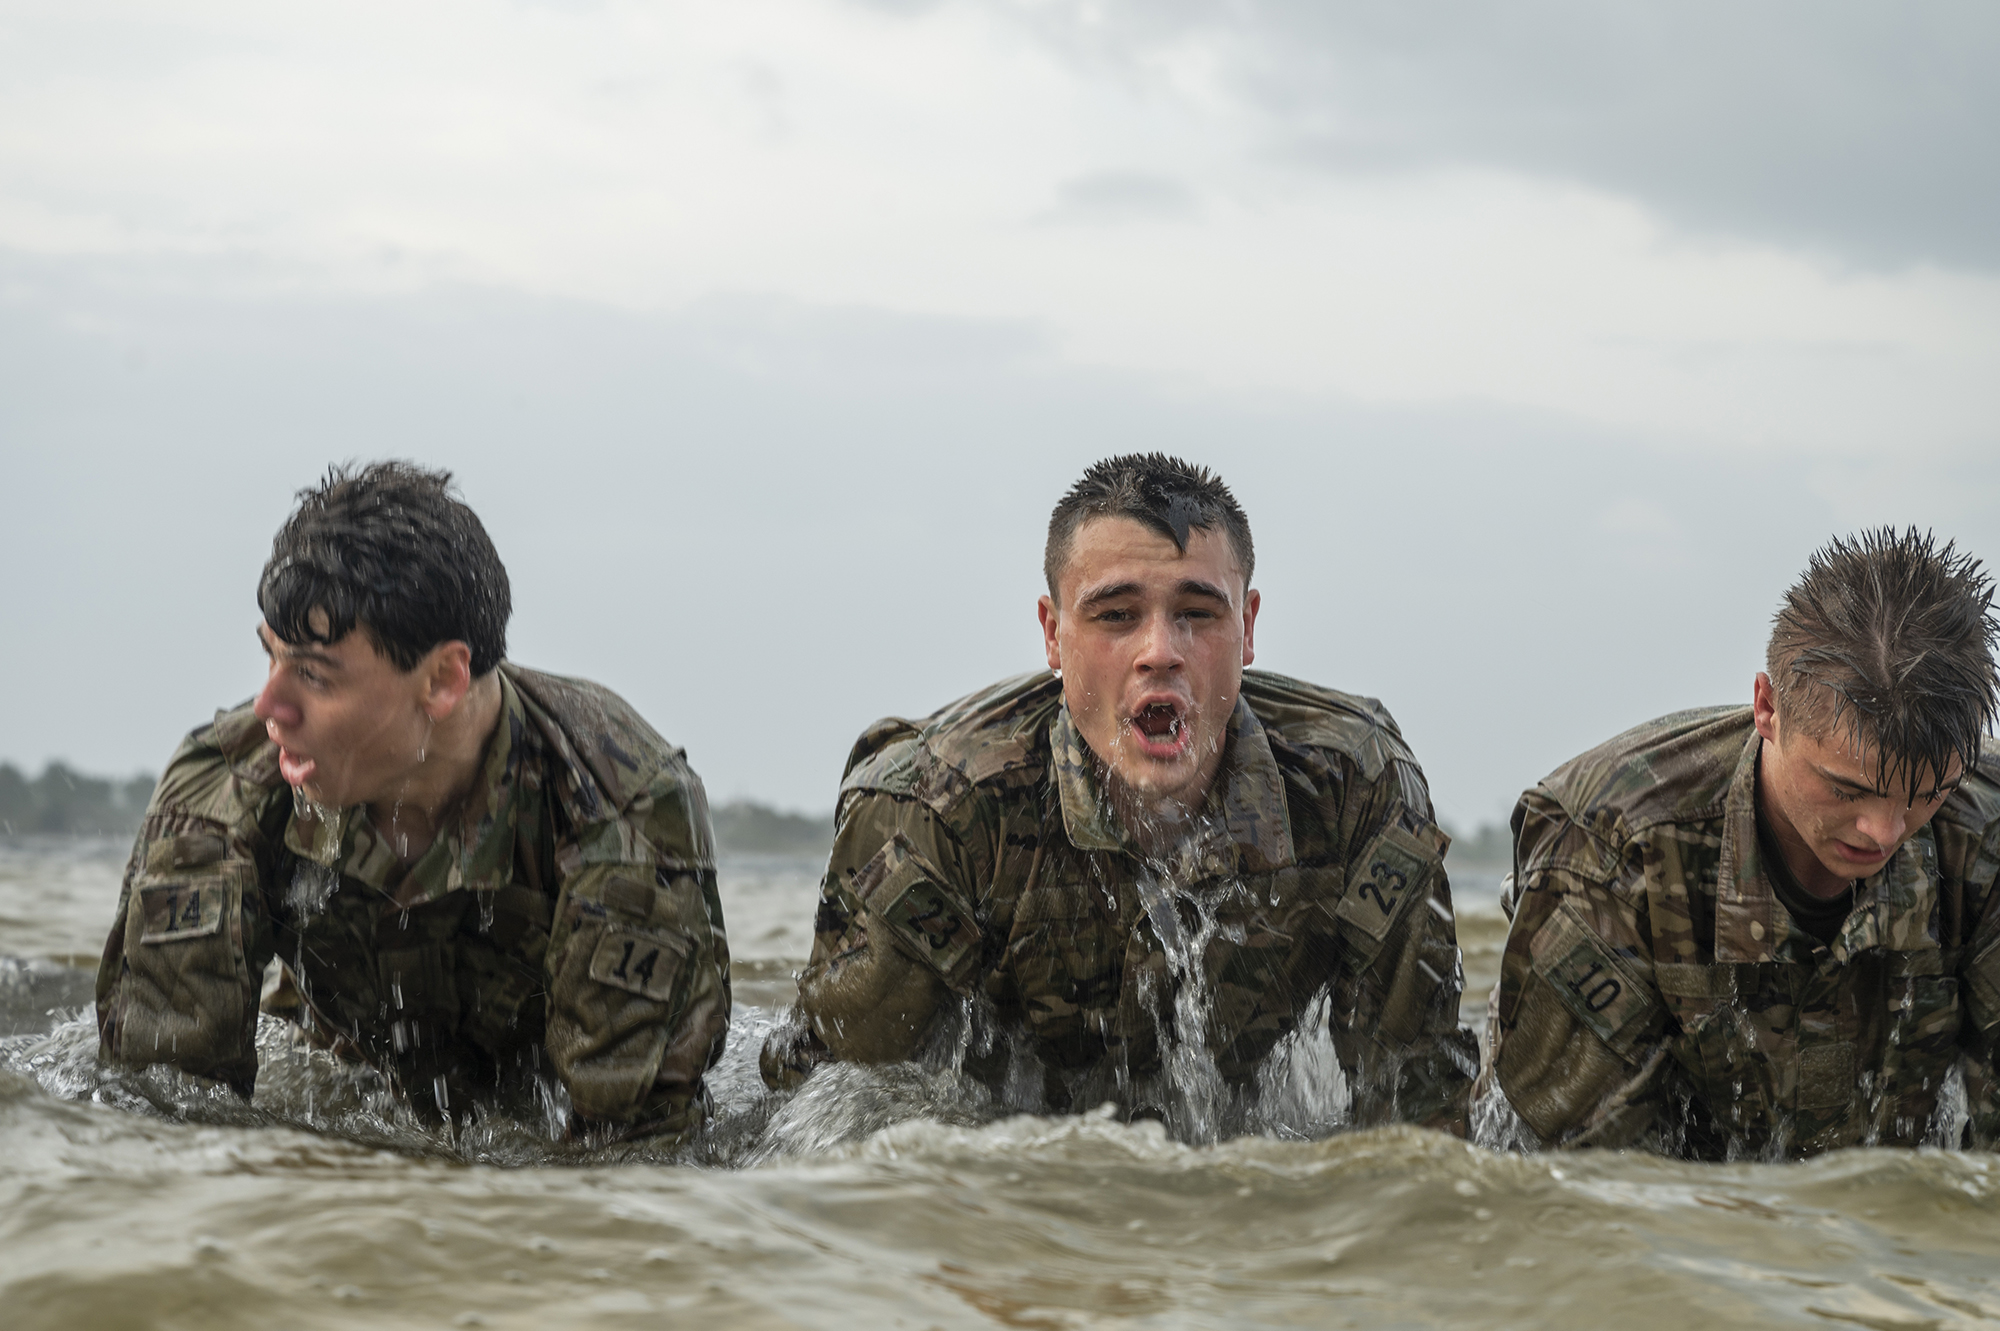 Air Force special tactics and combat rescue officer candidates perform push-ups in the water during an assessment and selection process at Hurlburt Field, Fla., March 25, 2021. (Tech. Sgt. Sandra Welch/Air Force)